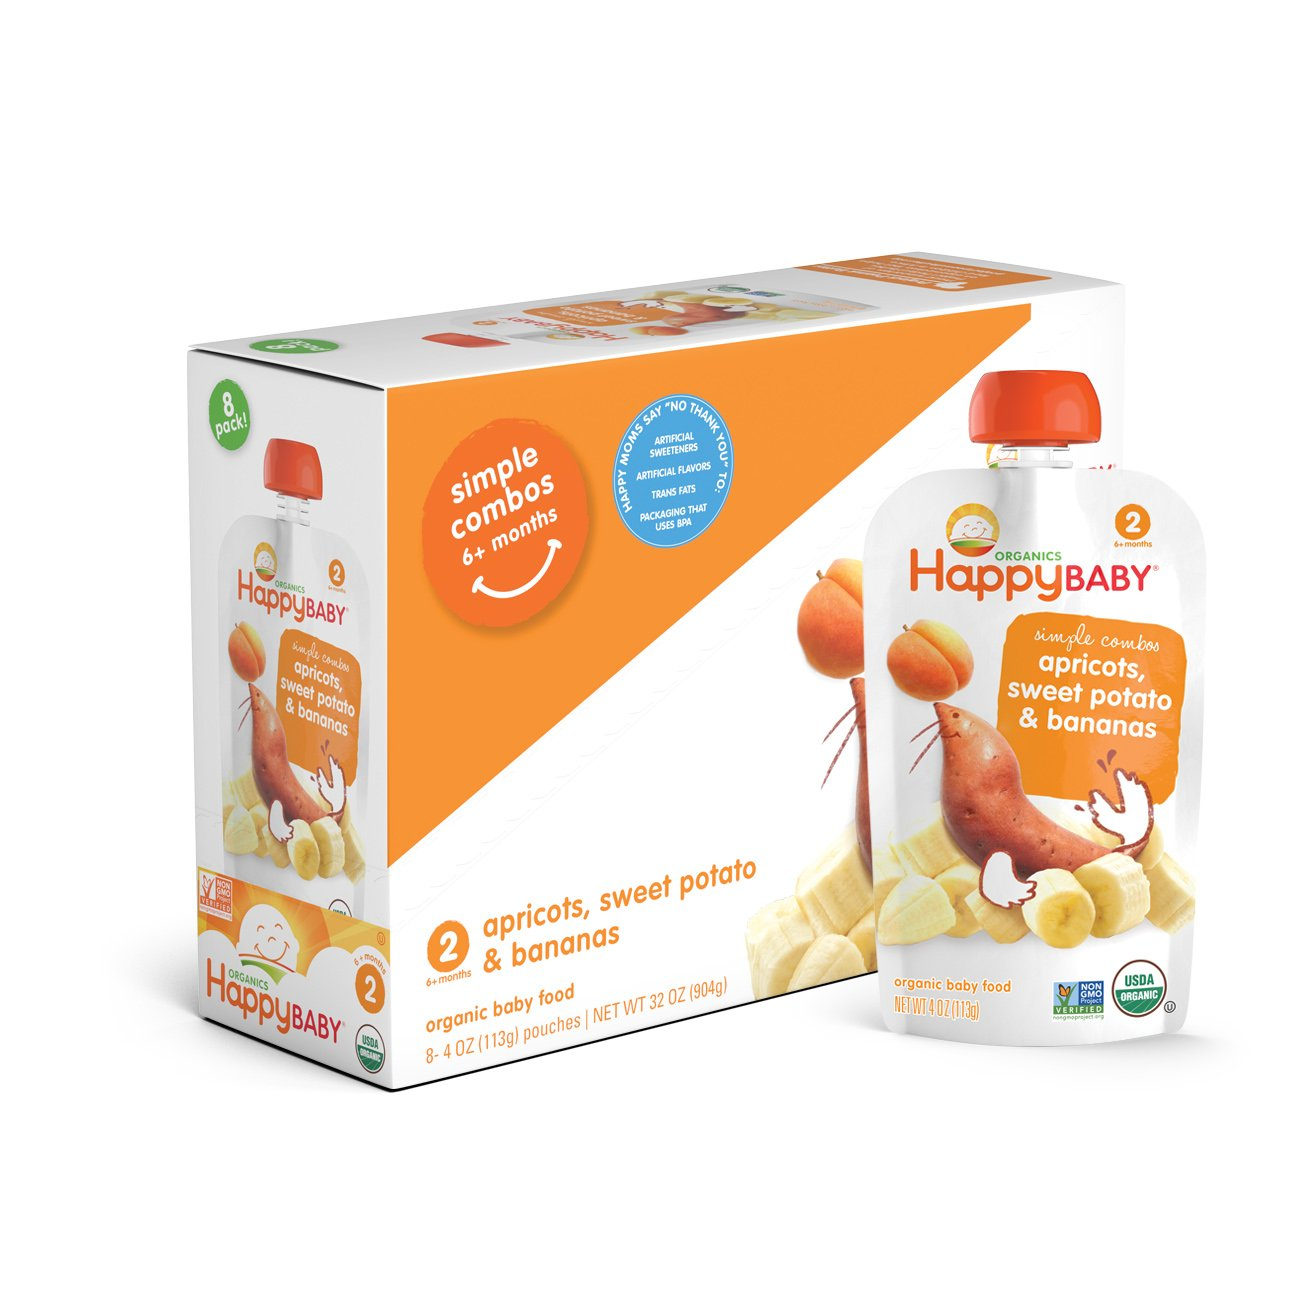 Happy Baby Organic Stage 2 Baby Food Simple Combos Apricots Sweet Potatoes & Bananas, 4 Ounce Pouch (Pack of 16) Resealable Baby Food Pouches, Fruit & Veggie Puree, Organic Non-GMO Gluten Free Kosher by Happy Baby